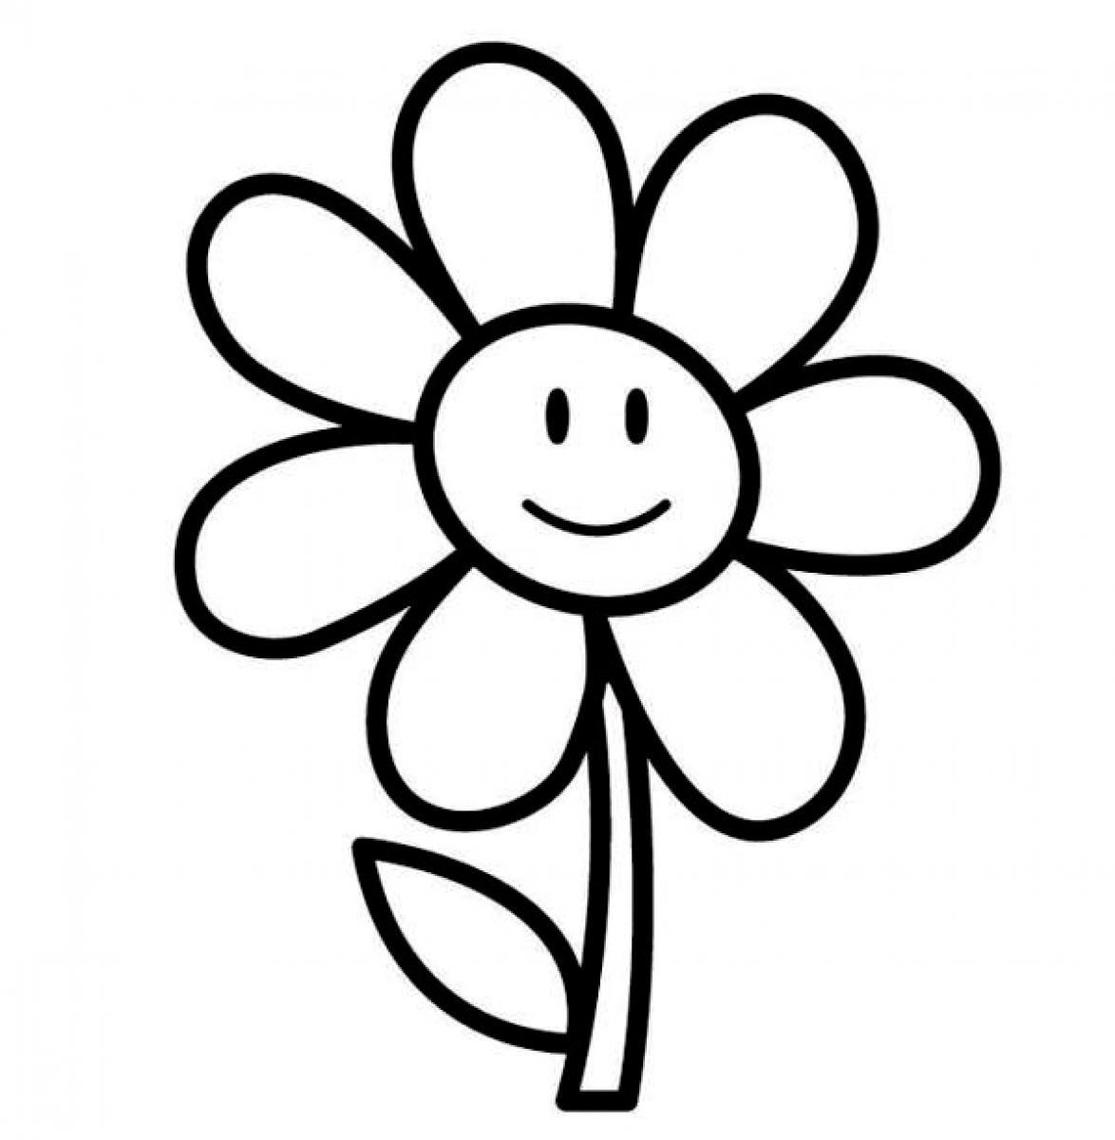 Free Flower Clipart Black And White Free Download, Download